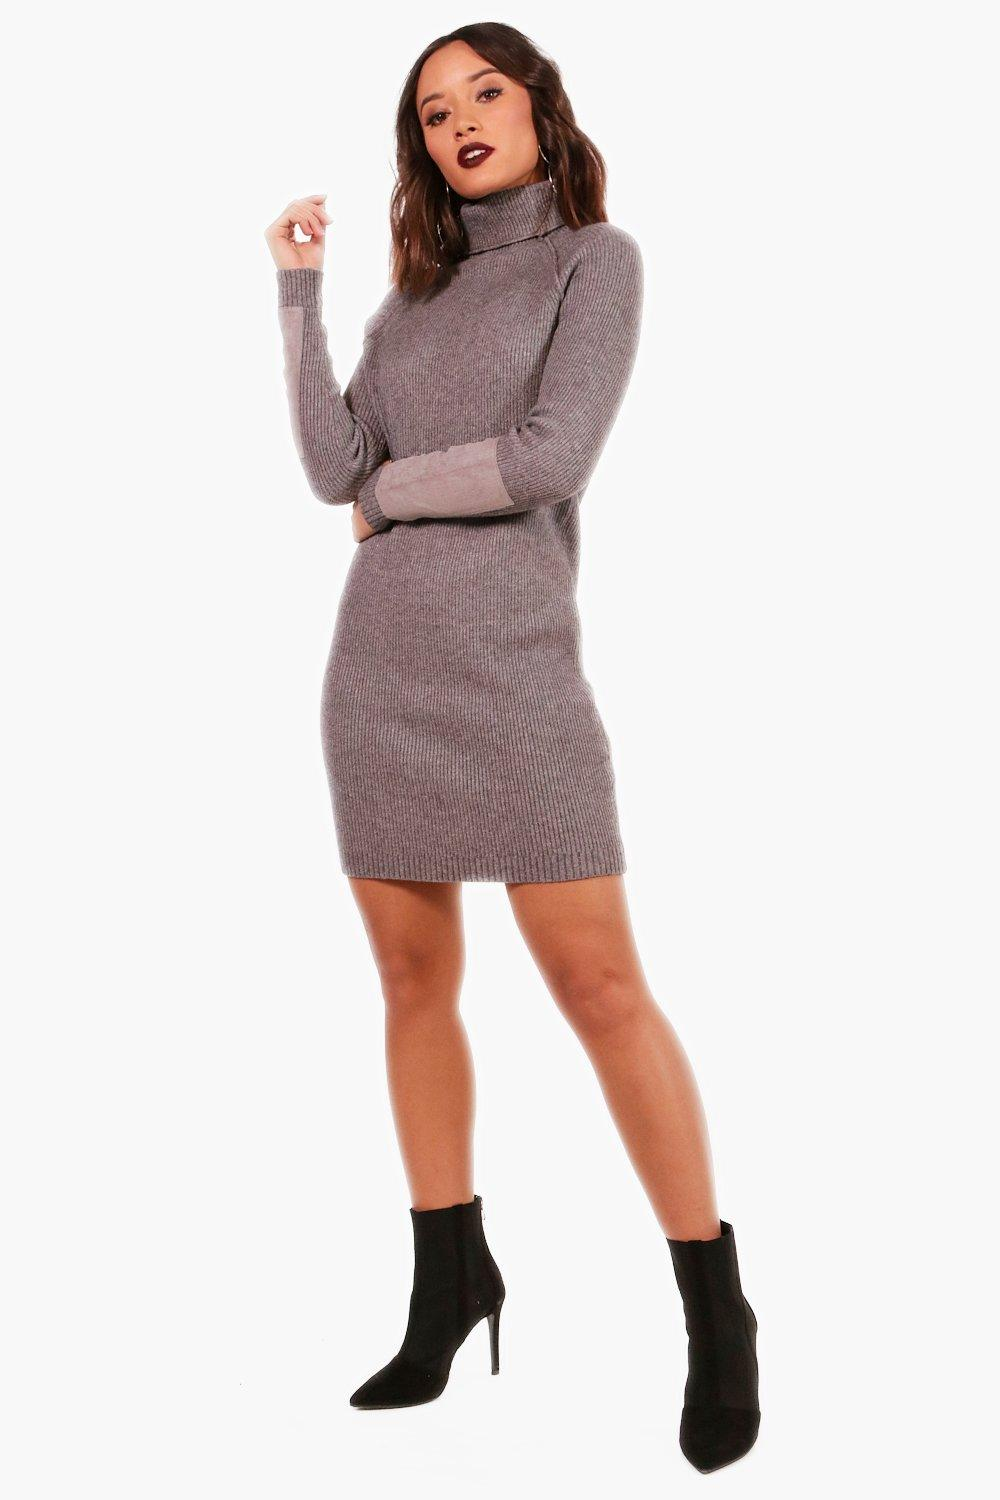 cheap for sale latest releases best wholesaler Heavy Knit Suede Patch Jumper Dress | Boohoo